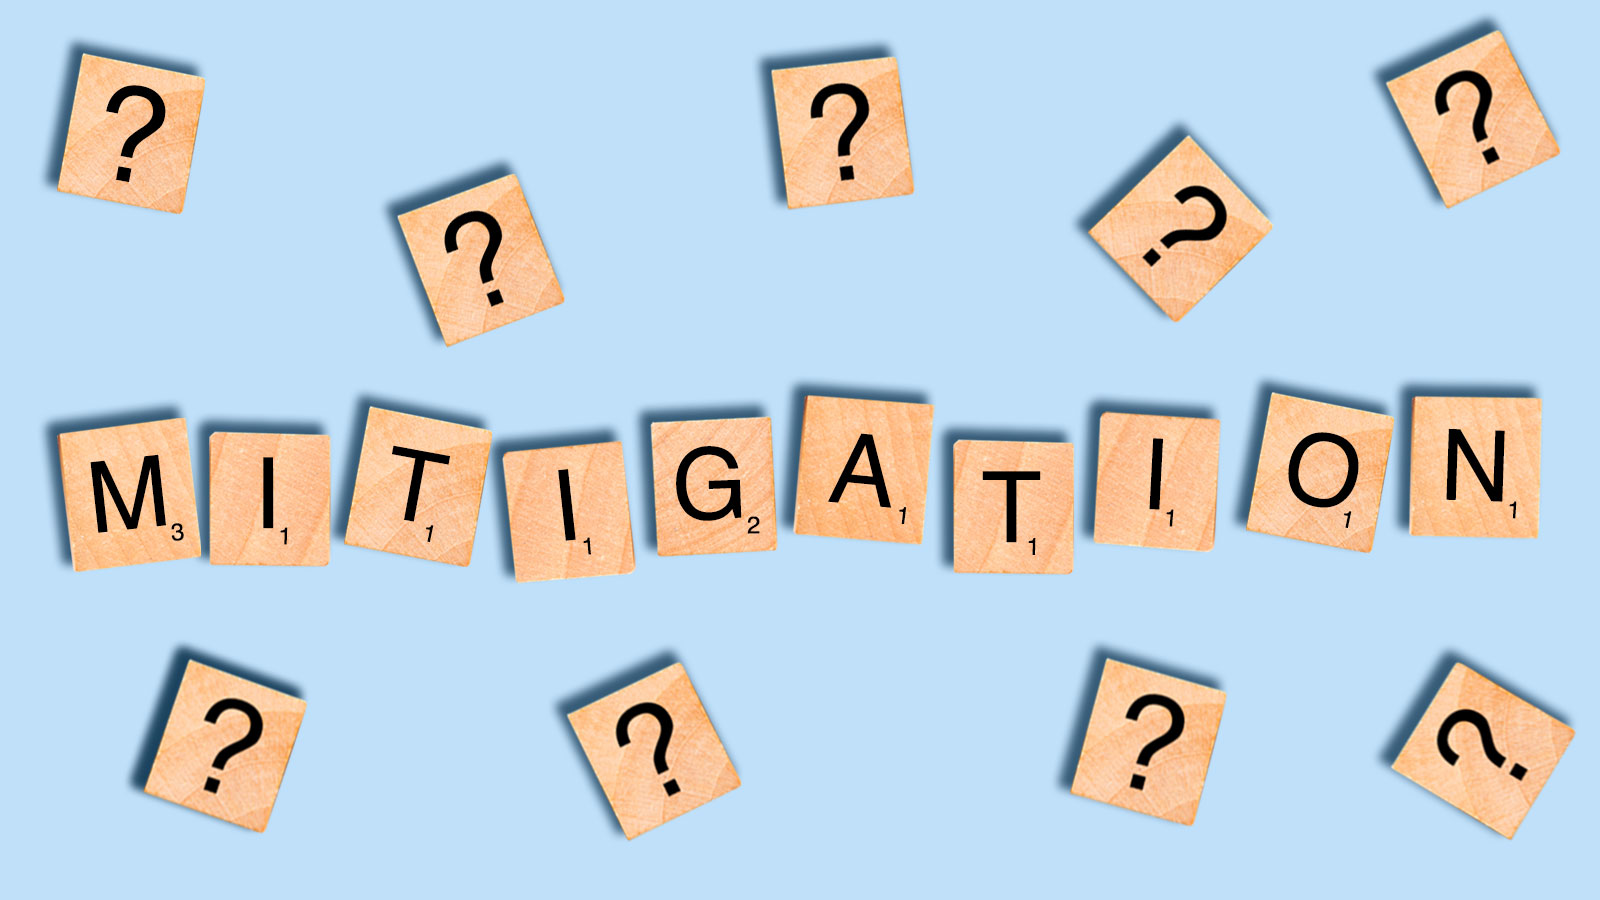 The word mitigation spelled out with Scrabble tiles surrounded by question marks